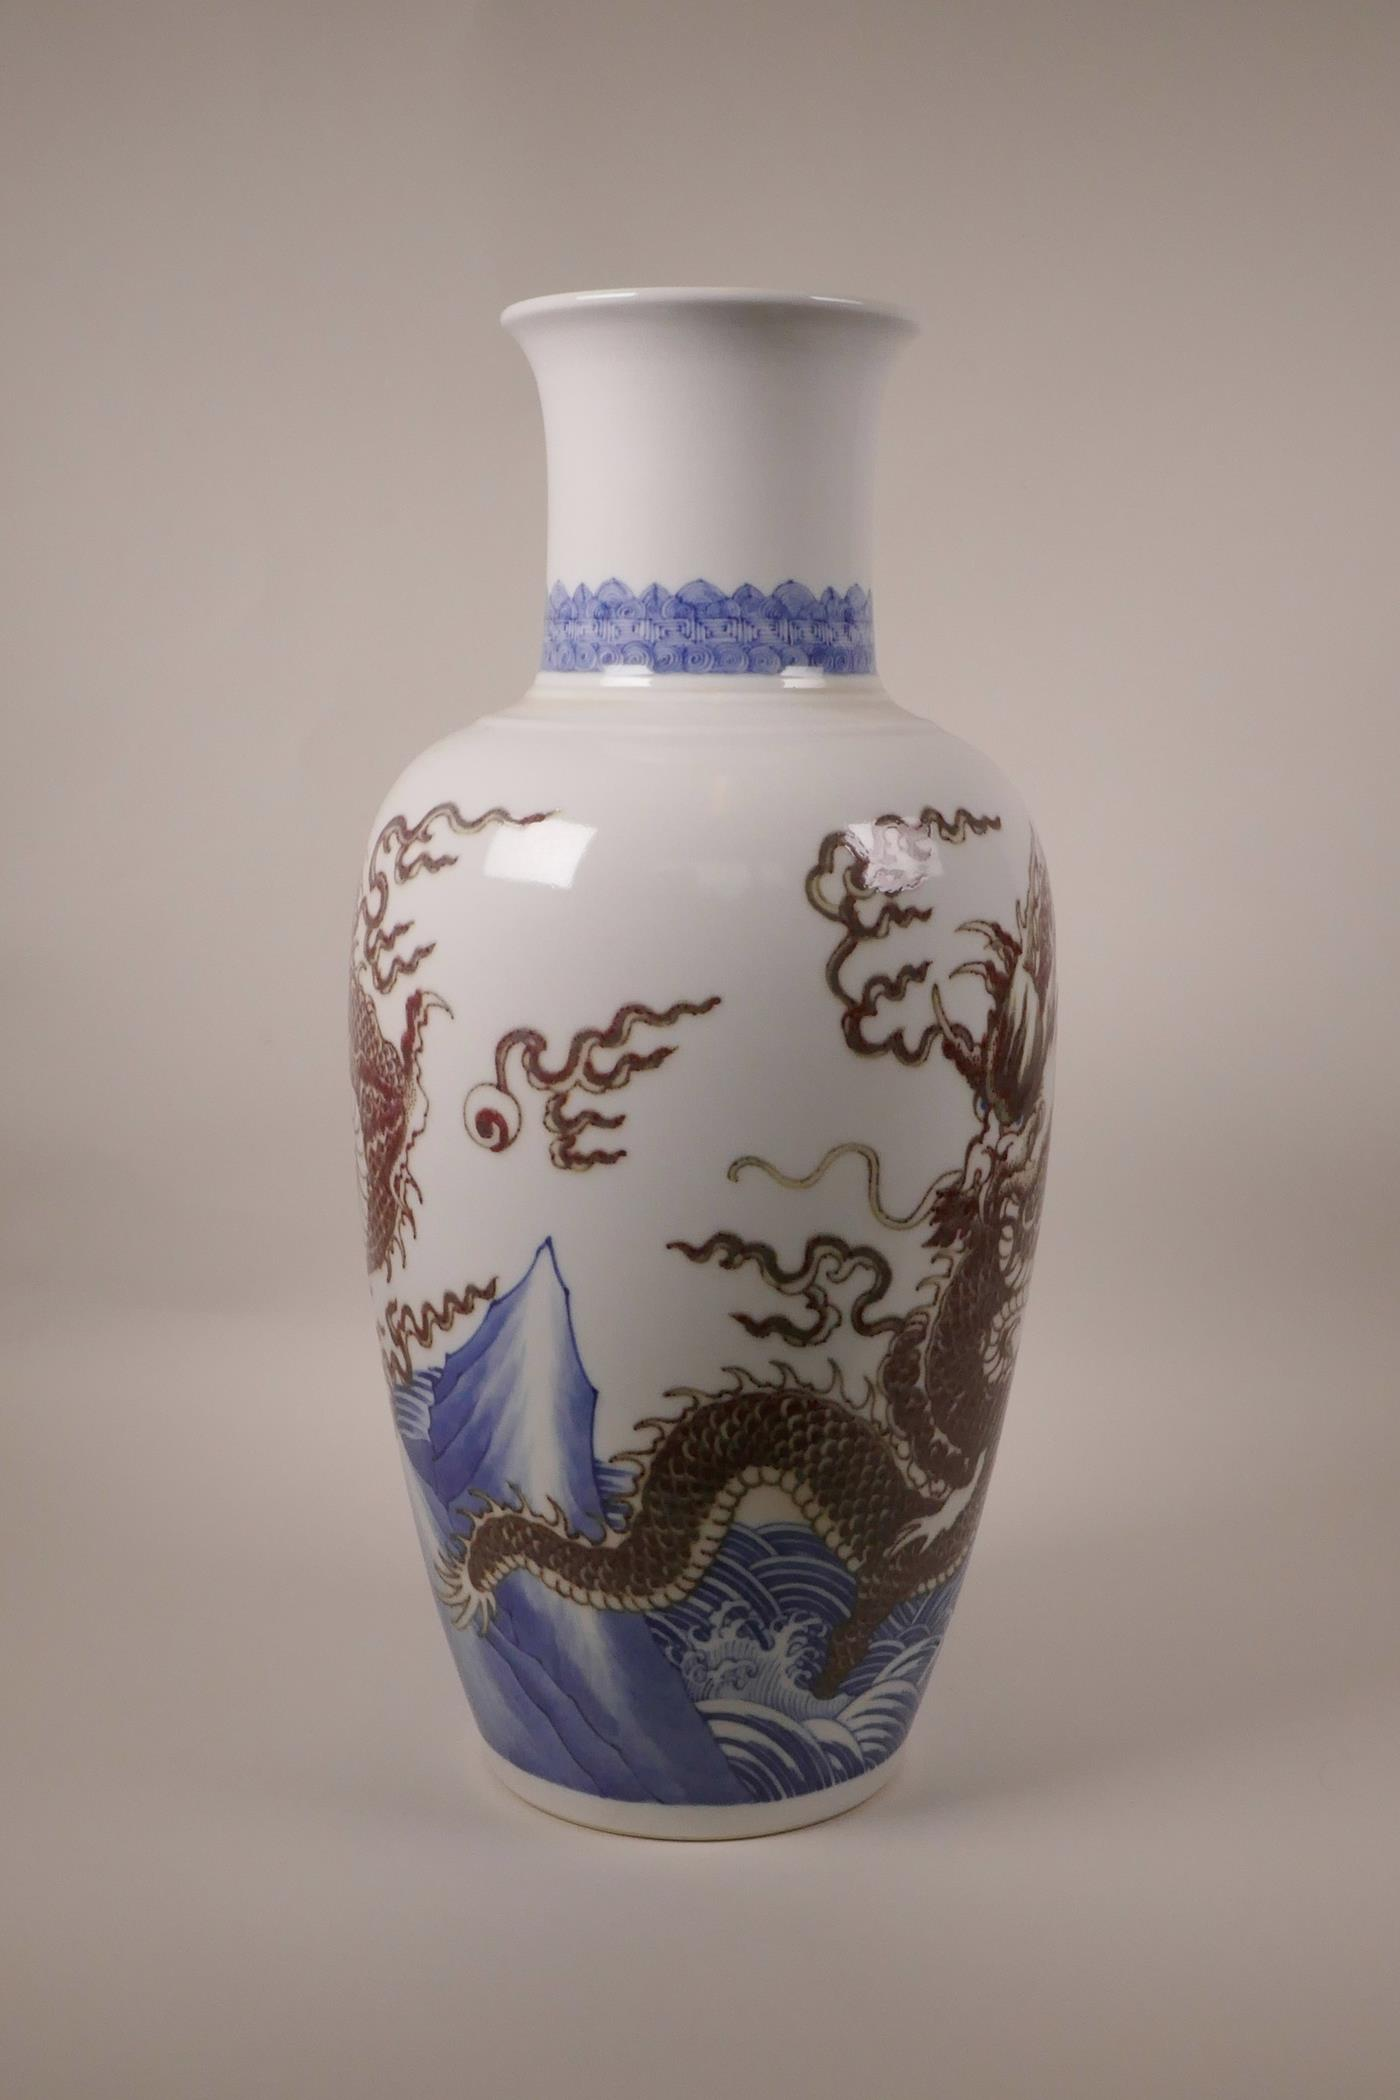 Lot 63 - A large Chinese blue and white porcelain vase decorated with a red dragon chasing the flaming pearl,